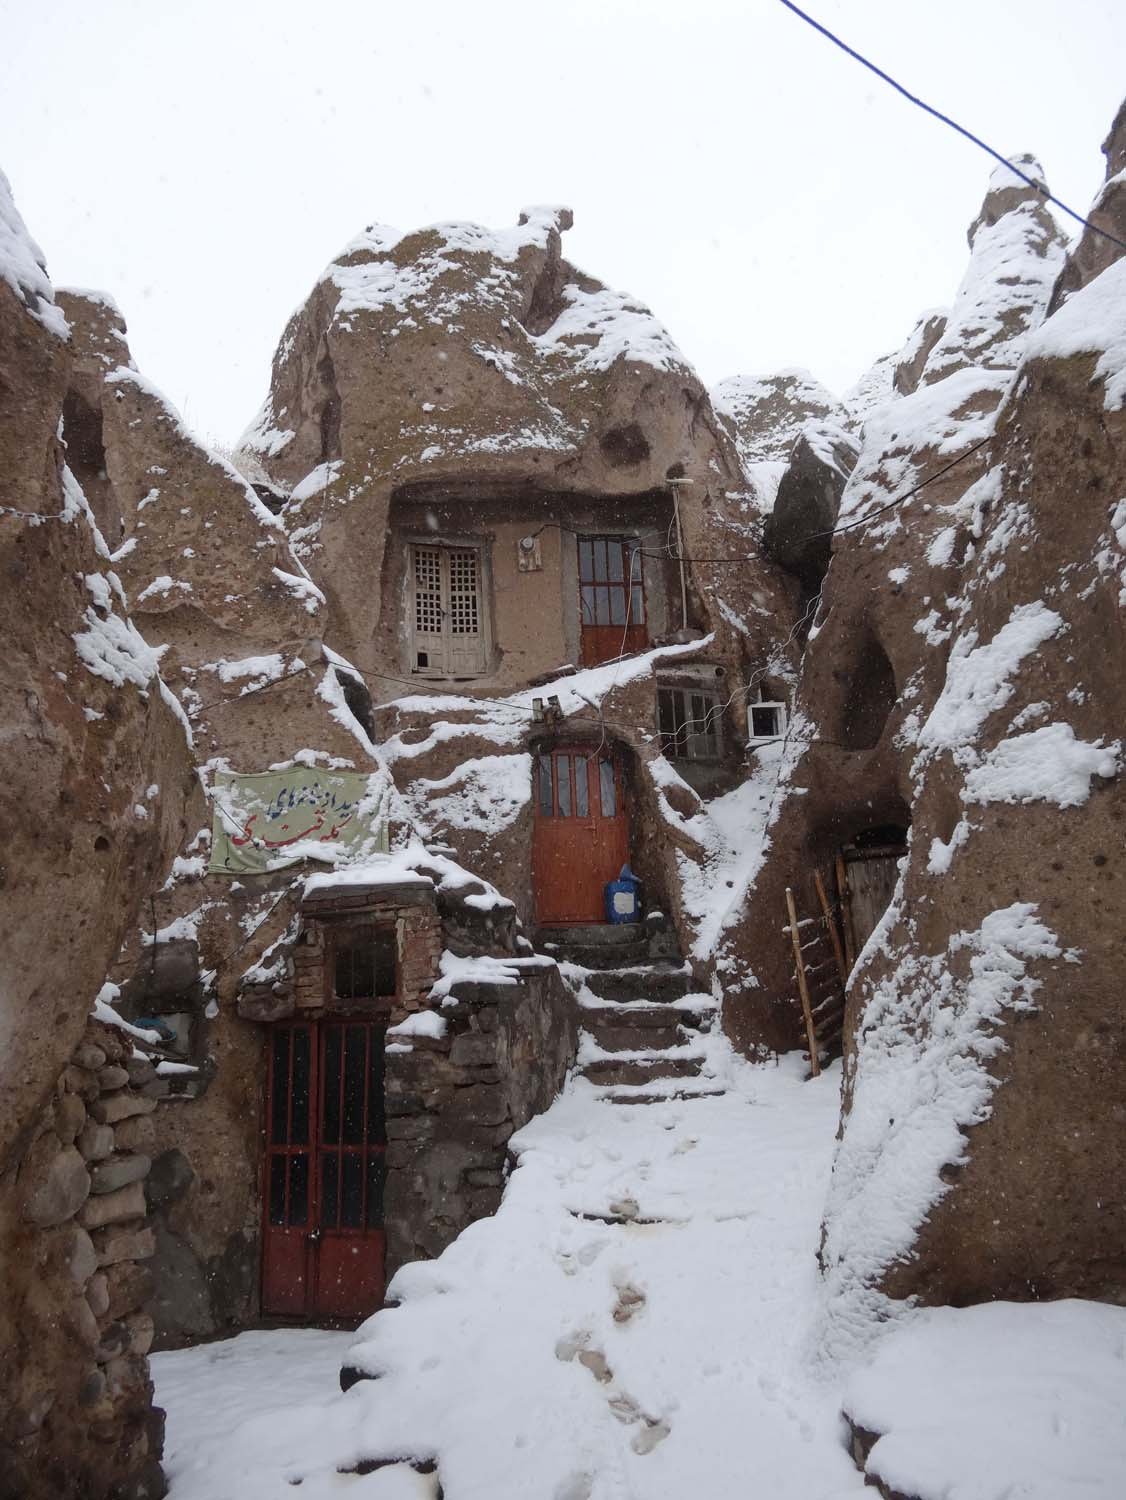 snow in Kandovan where they still live in homes made in caves